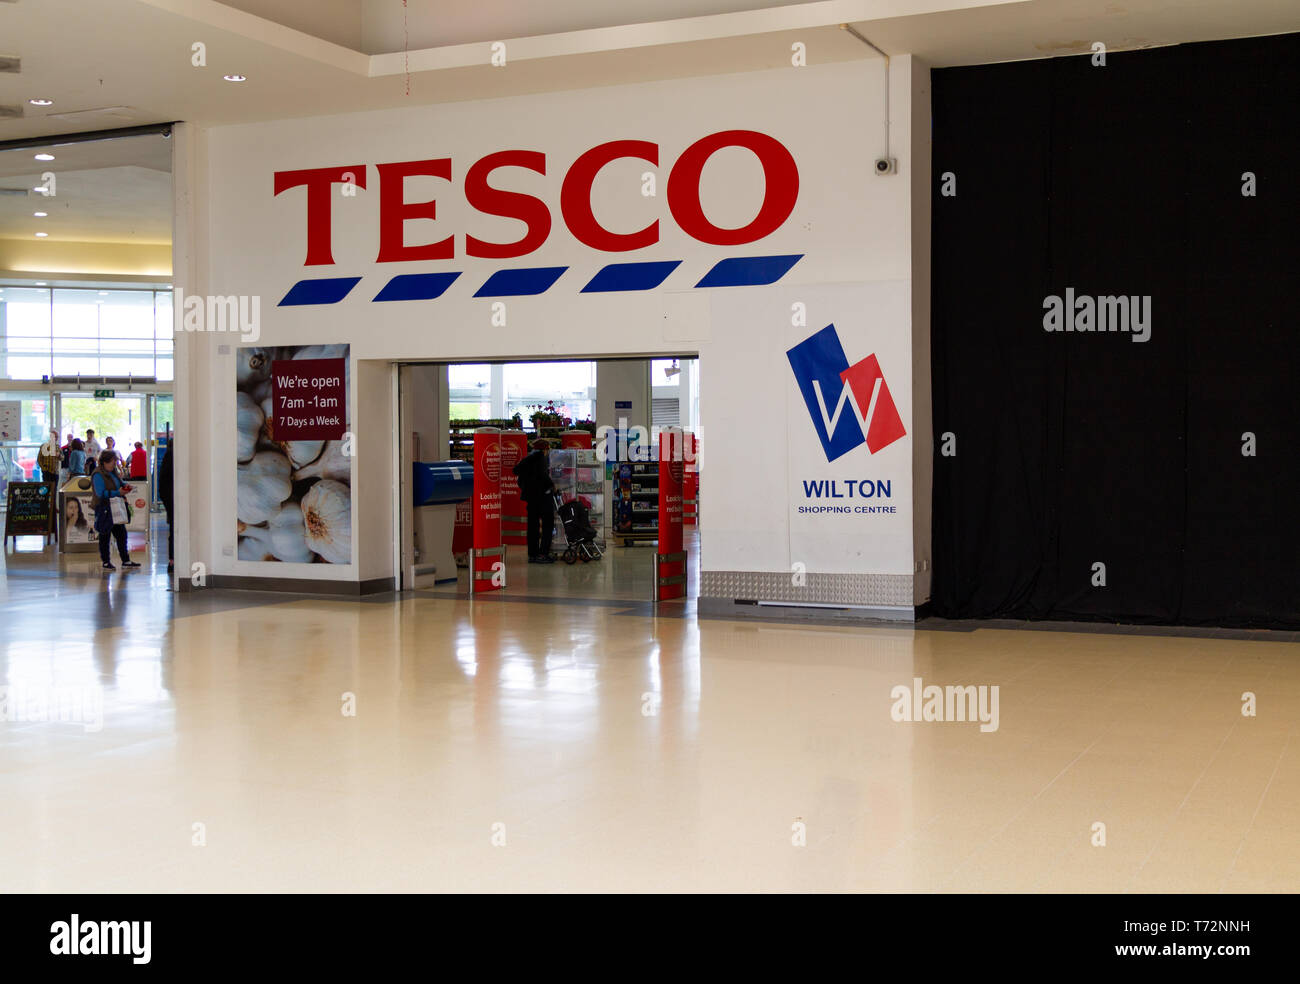 entrance-to-tesco-supermarket-in-a-shopping-mall-T72NNH.jpg